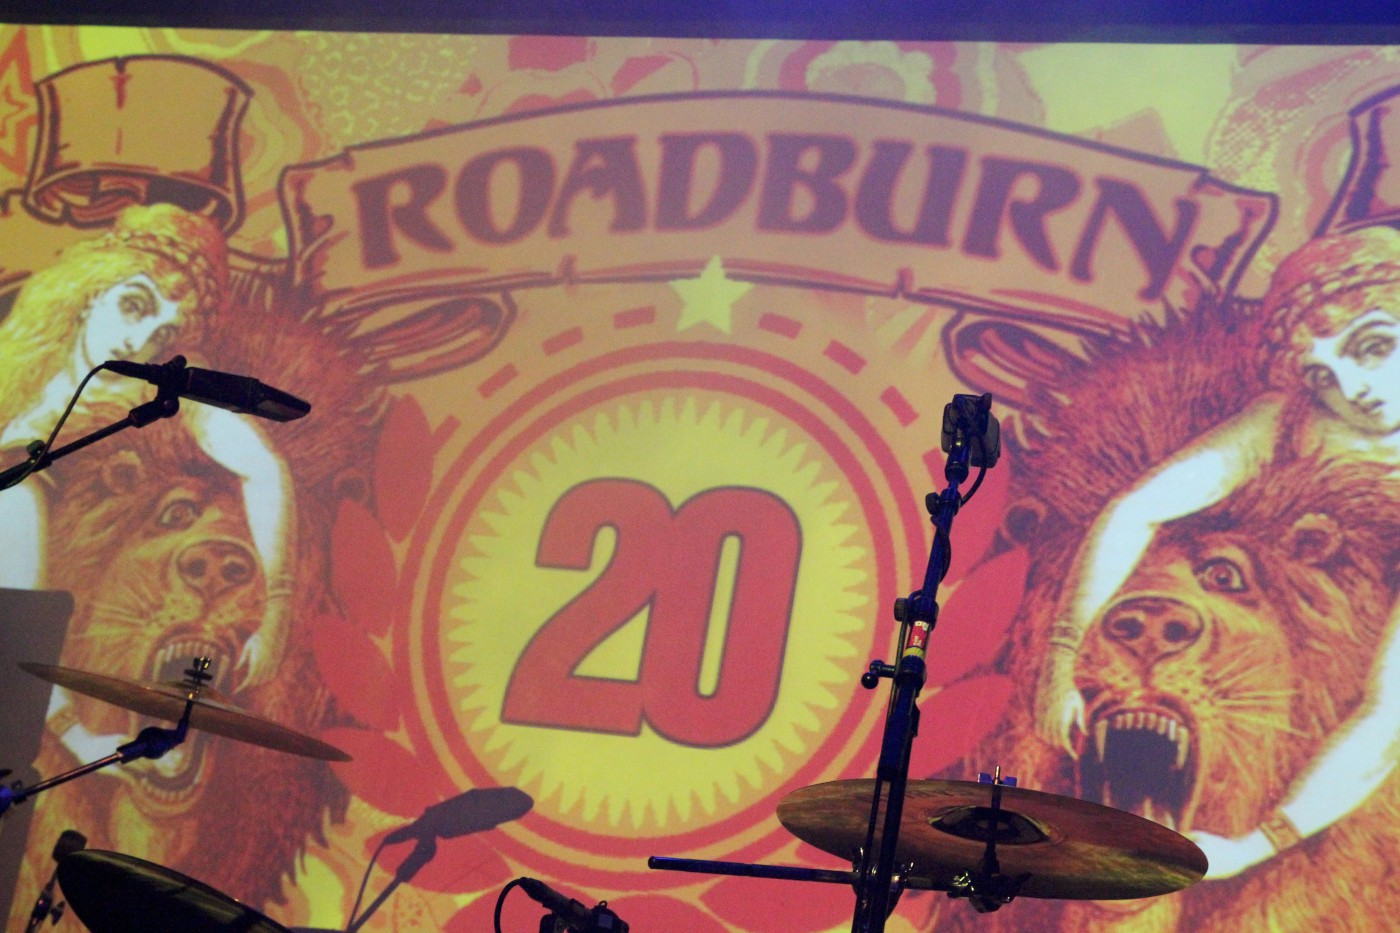 Roadburn 2015 banner. (Photo by JJ Koczan)